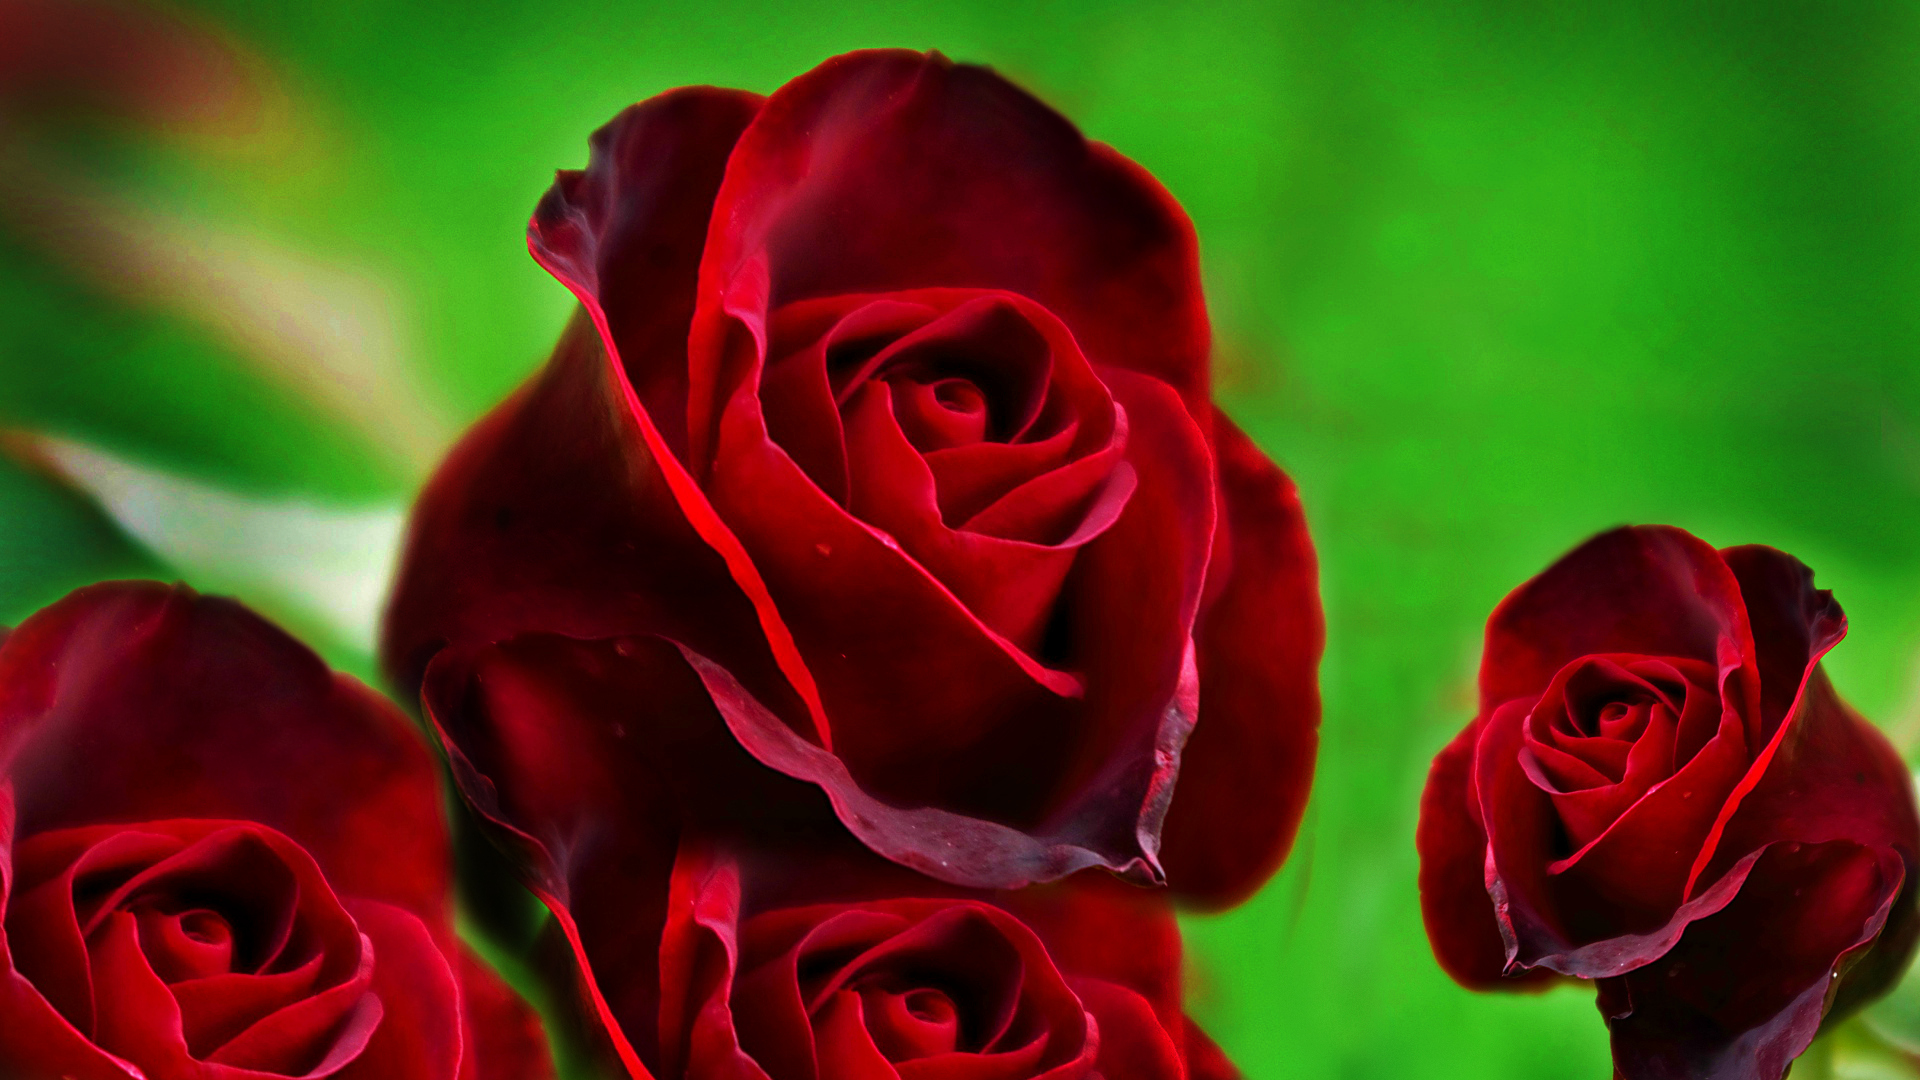 Red rose wallpapers high quality download free - Images of red roses hd ...